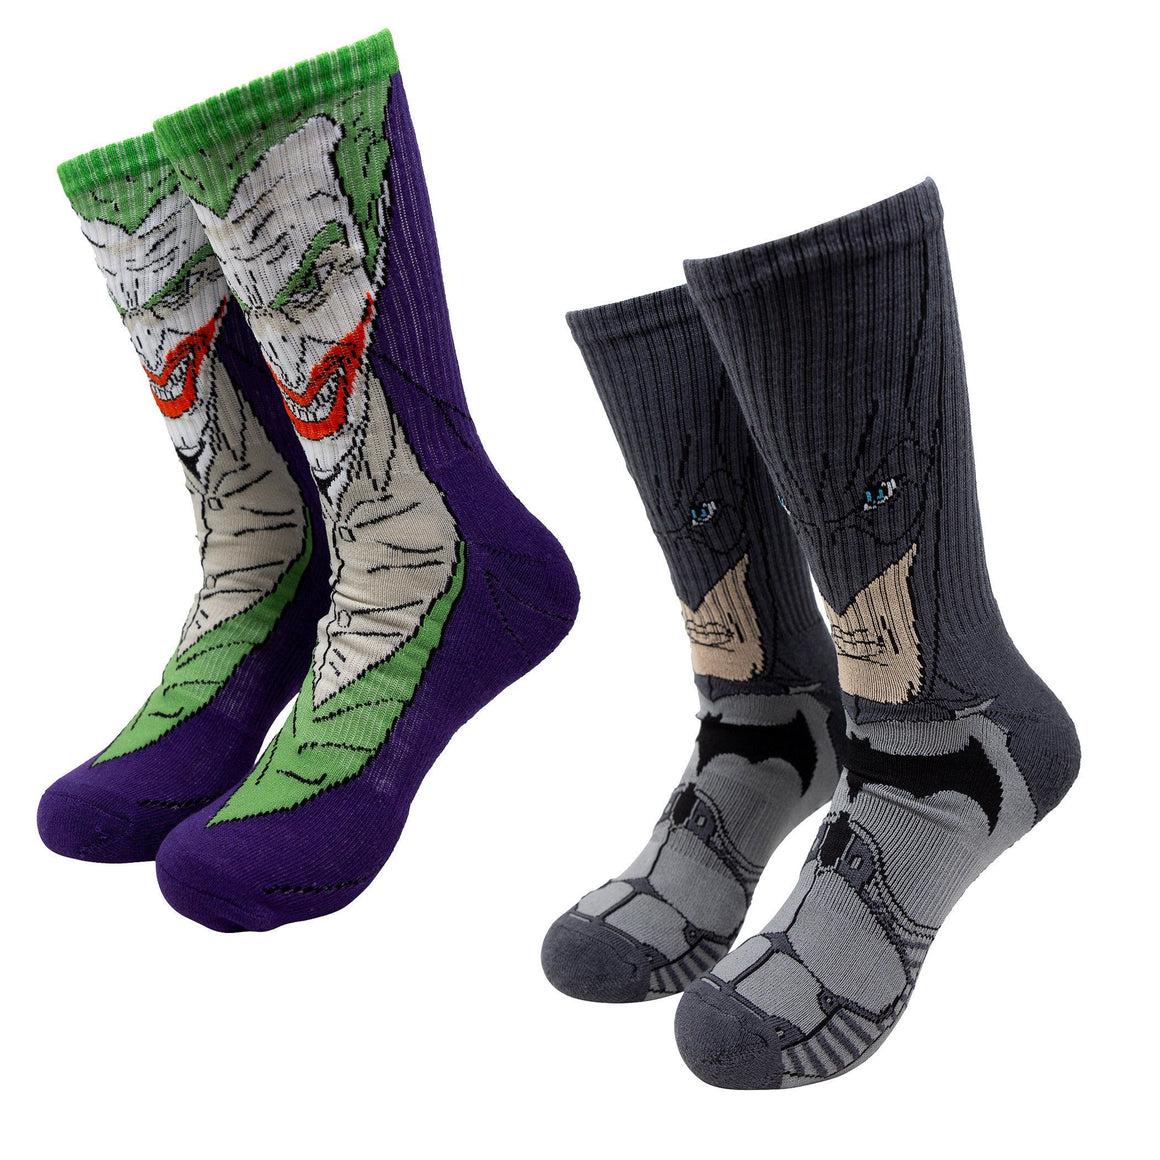 2 Pair Pack Batman and Joker Athletic Socks - The Sock Spot